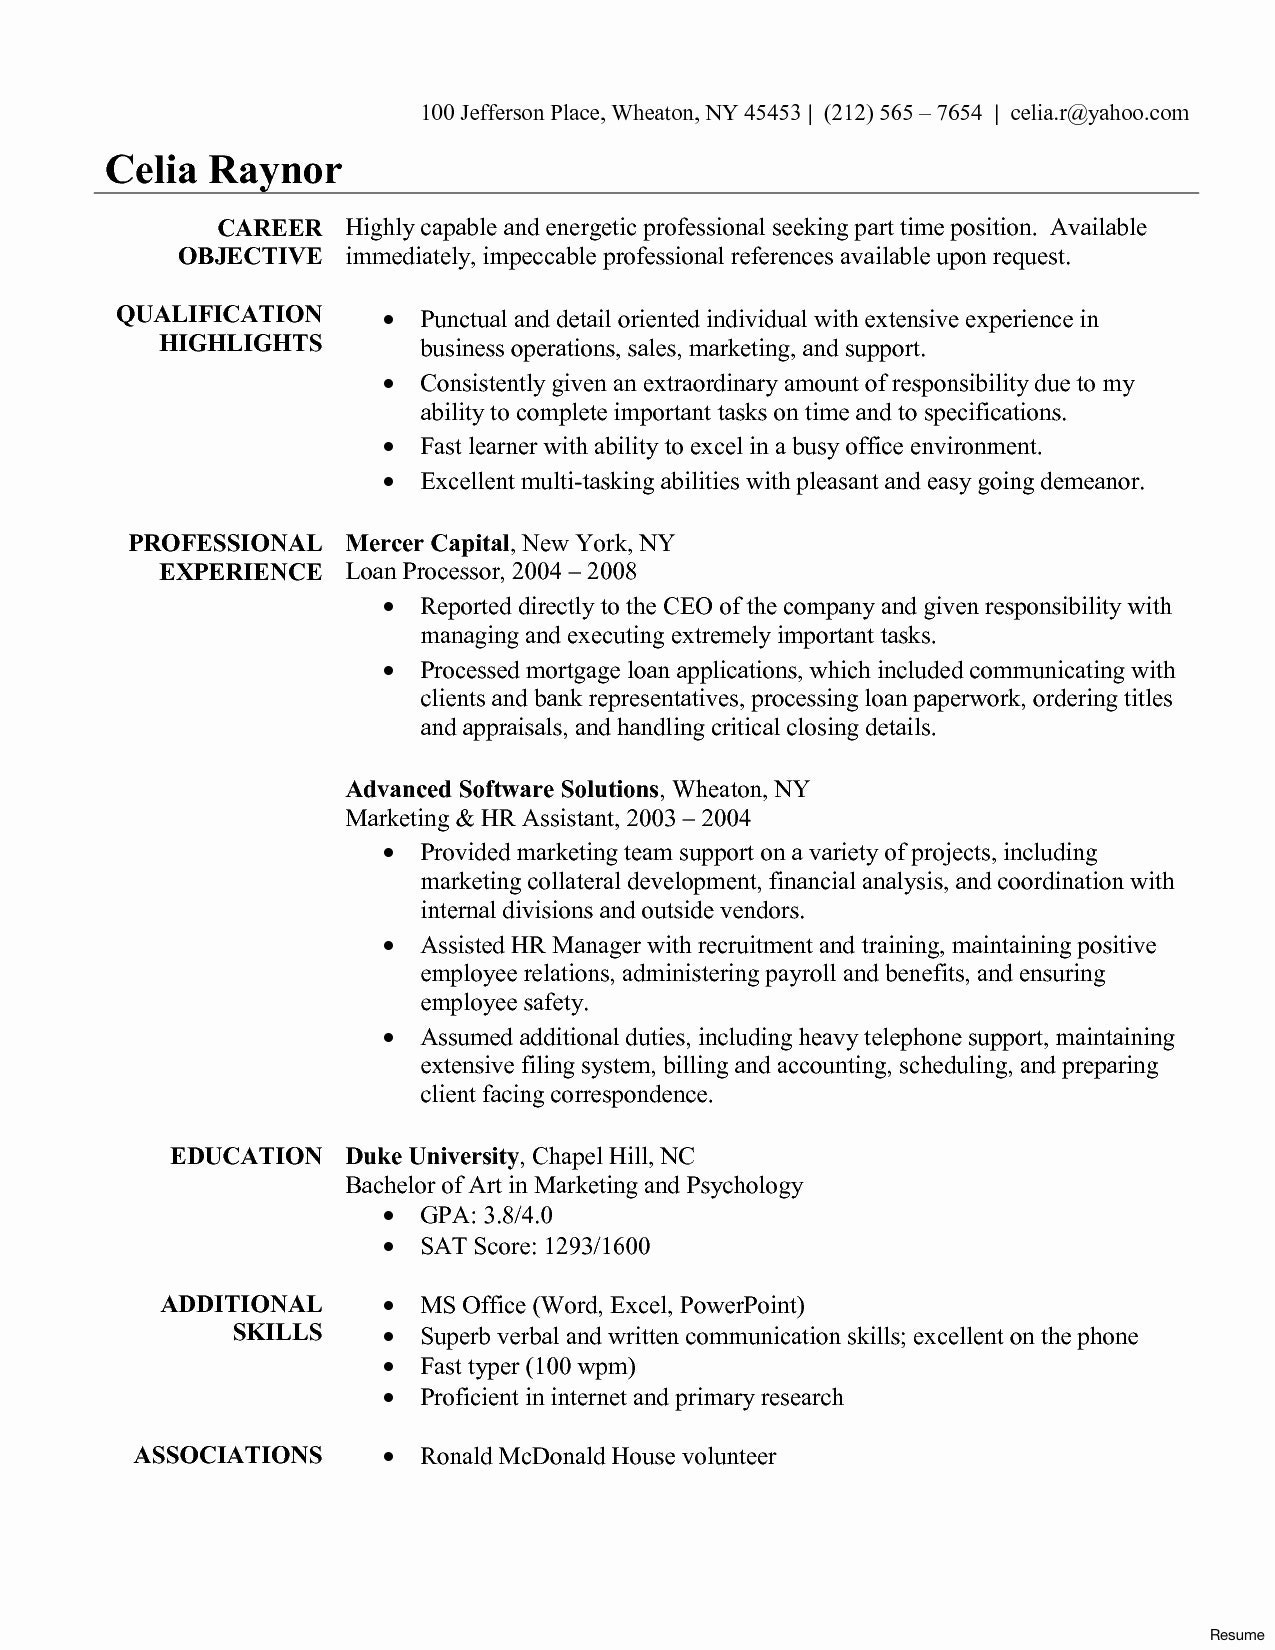 Yahoo Ceo Resume Template - Individual Development Unique Law Student Resume Template Best